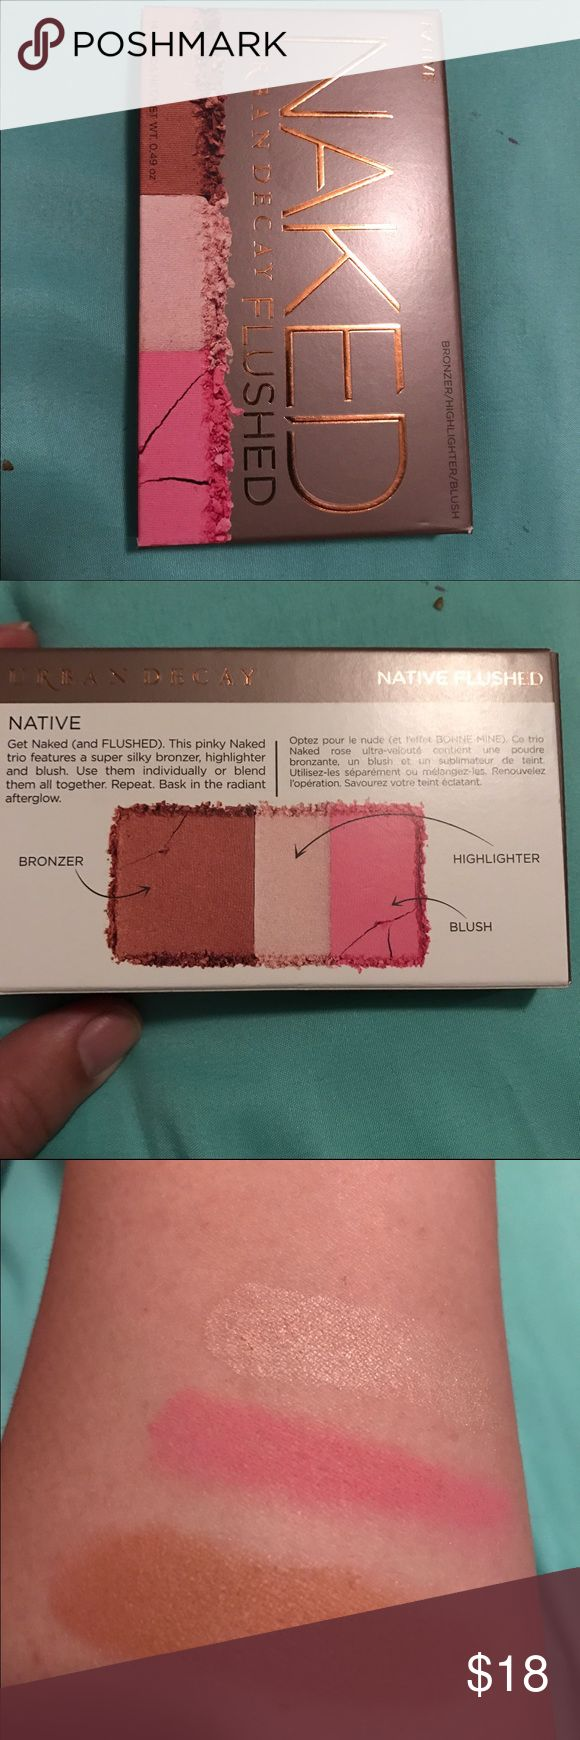 Urban Decay Naked Flushed palette in Native Brand new, in box.  Bought multiple with intention of using as bridesmaid gifts but ended up w one too many.  Swatches are from my other palette.  Non smoking home and quick shipping guaranteed.  Thanks for your interest! Urban Decay Makeup Blush